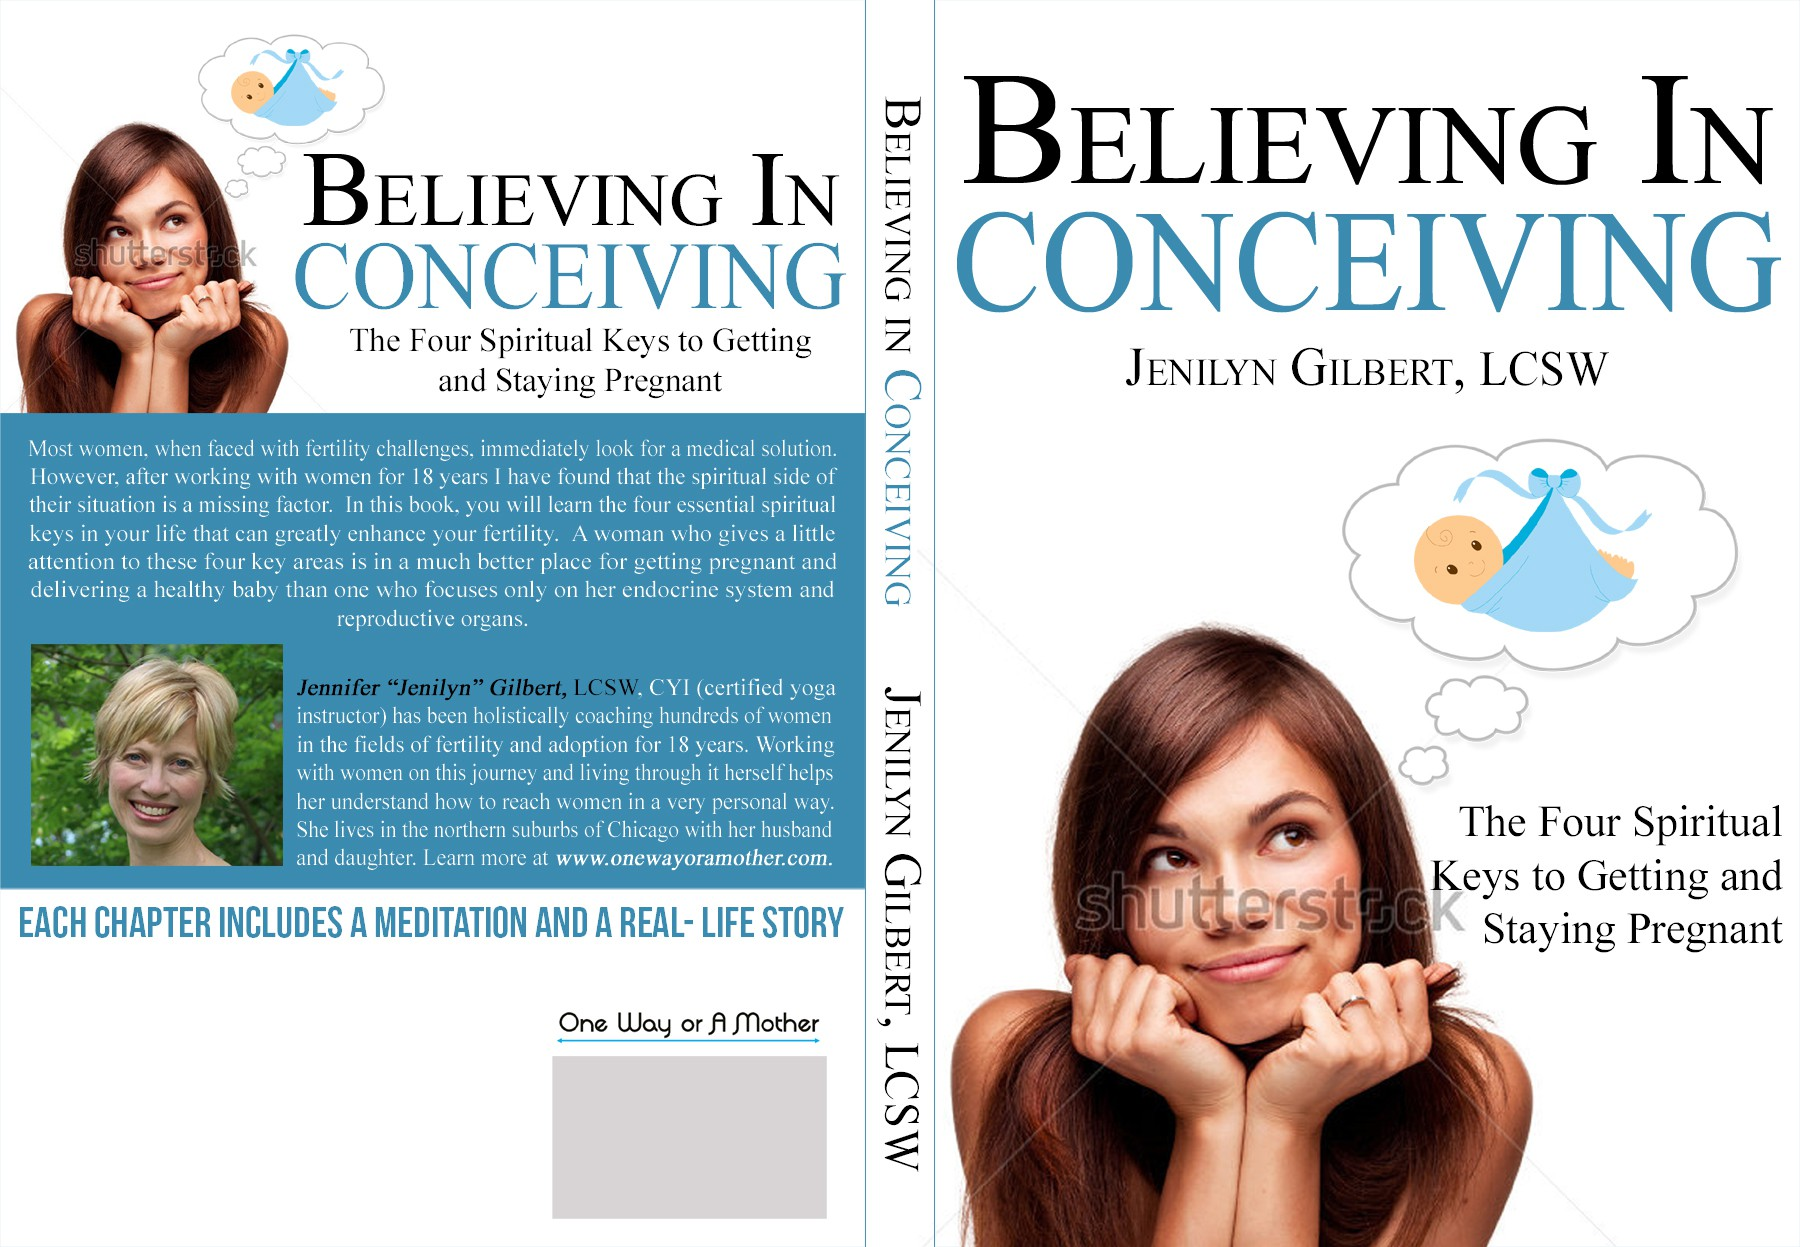 Create a book cover for a spiritual perspective on fertility